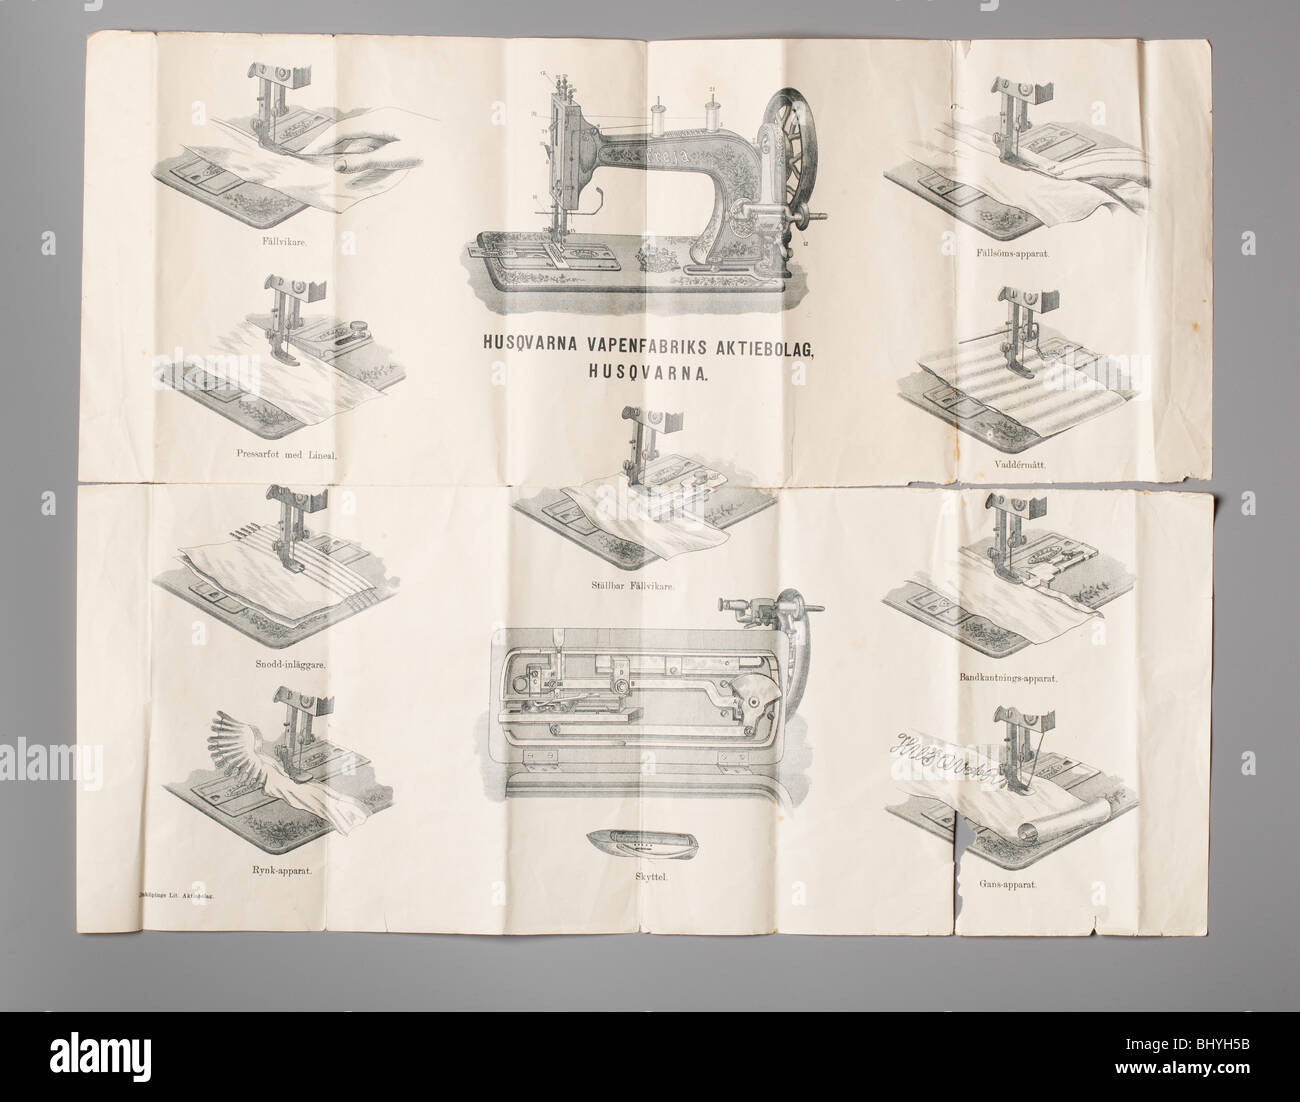 Instructions how to use a swedish Husqvarna sewing machine from the 1800s - Stock Image